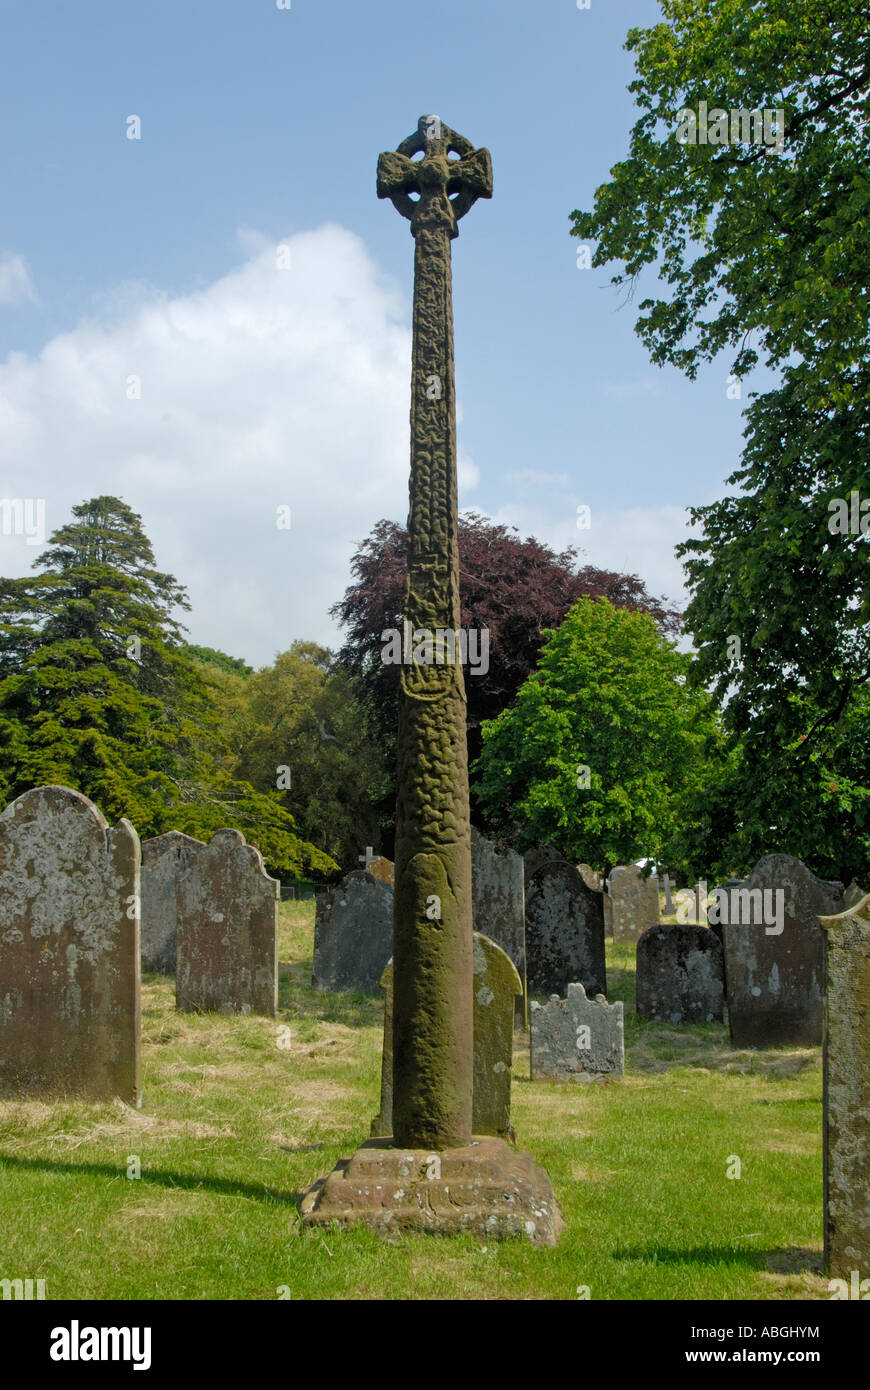 gosforth-cross-church-of-saint-mary-gosforth-lake-district-national-ABGHYM.jpg